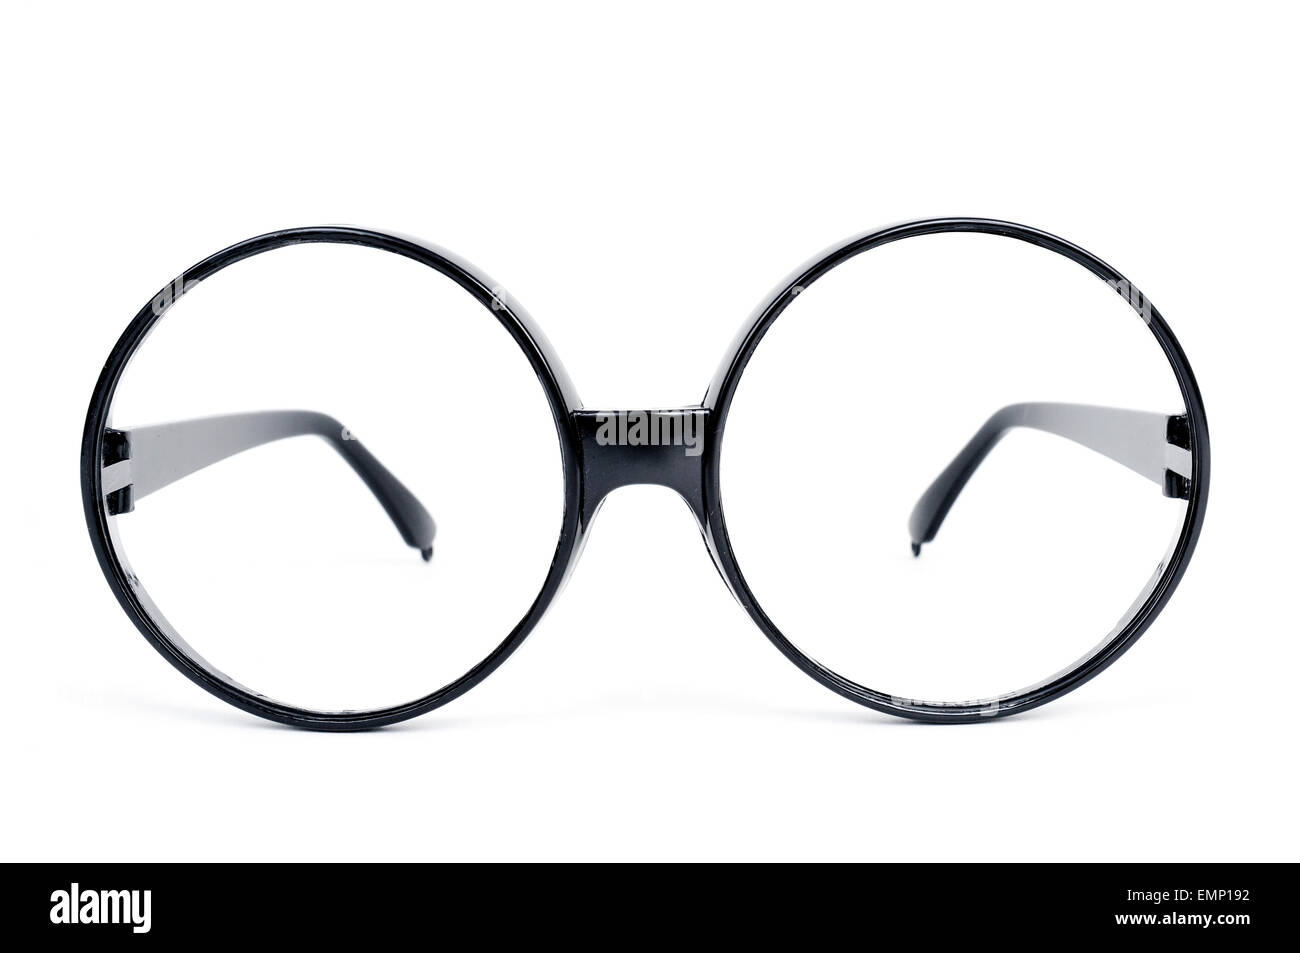 closeup of a pair of round-lens eyeglasses on a white background - Stock Image